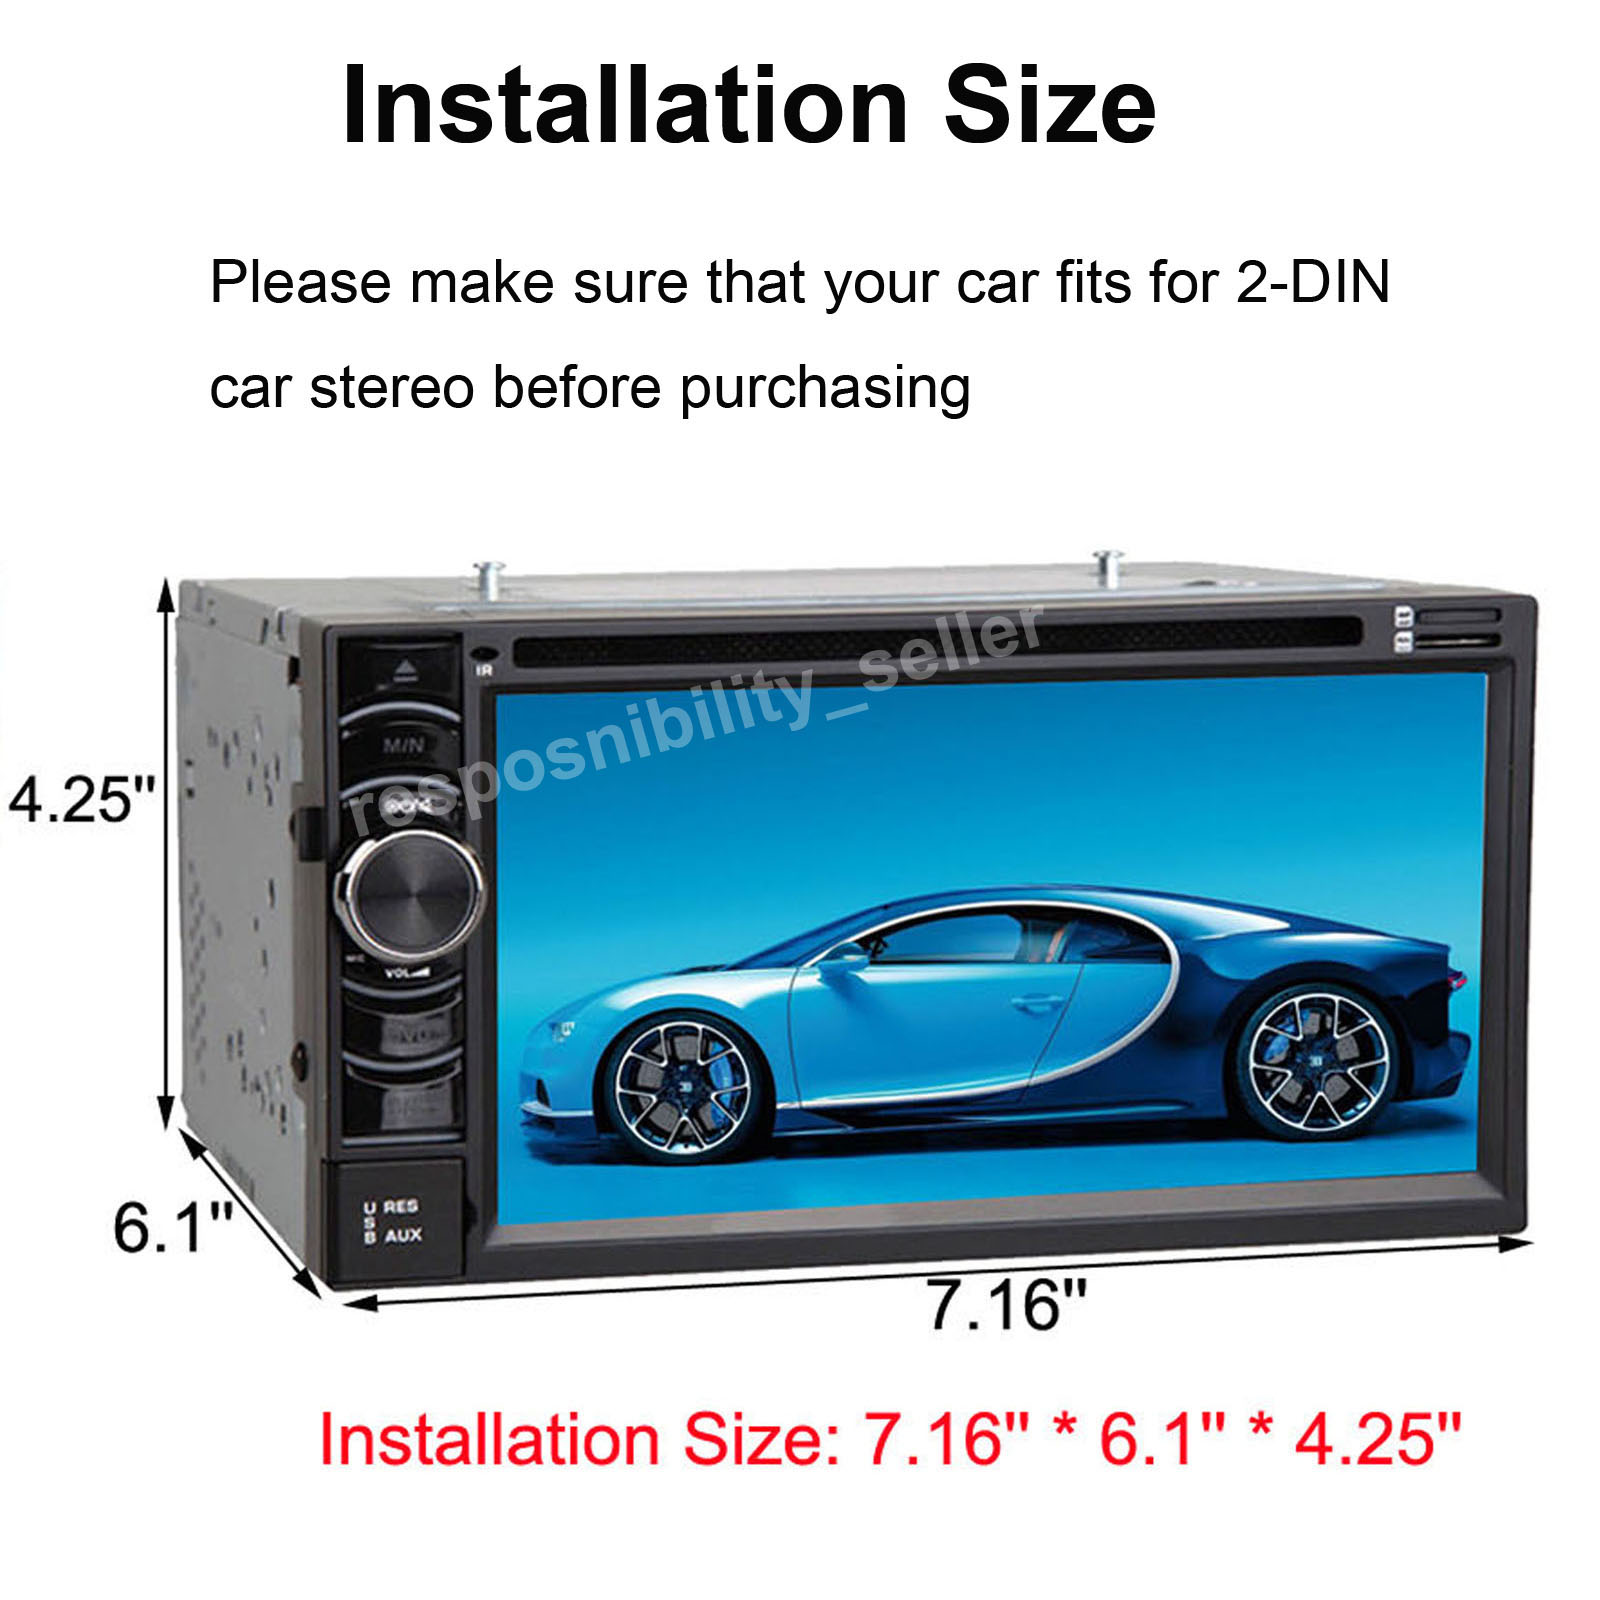 Pt Cruiser Instruction Manual 2008 Ford Taurus Limited Heatseat Fuse Box Array For Chrysler Town U0026 Country Double 2din Car Stereo Cd Rh Ebay